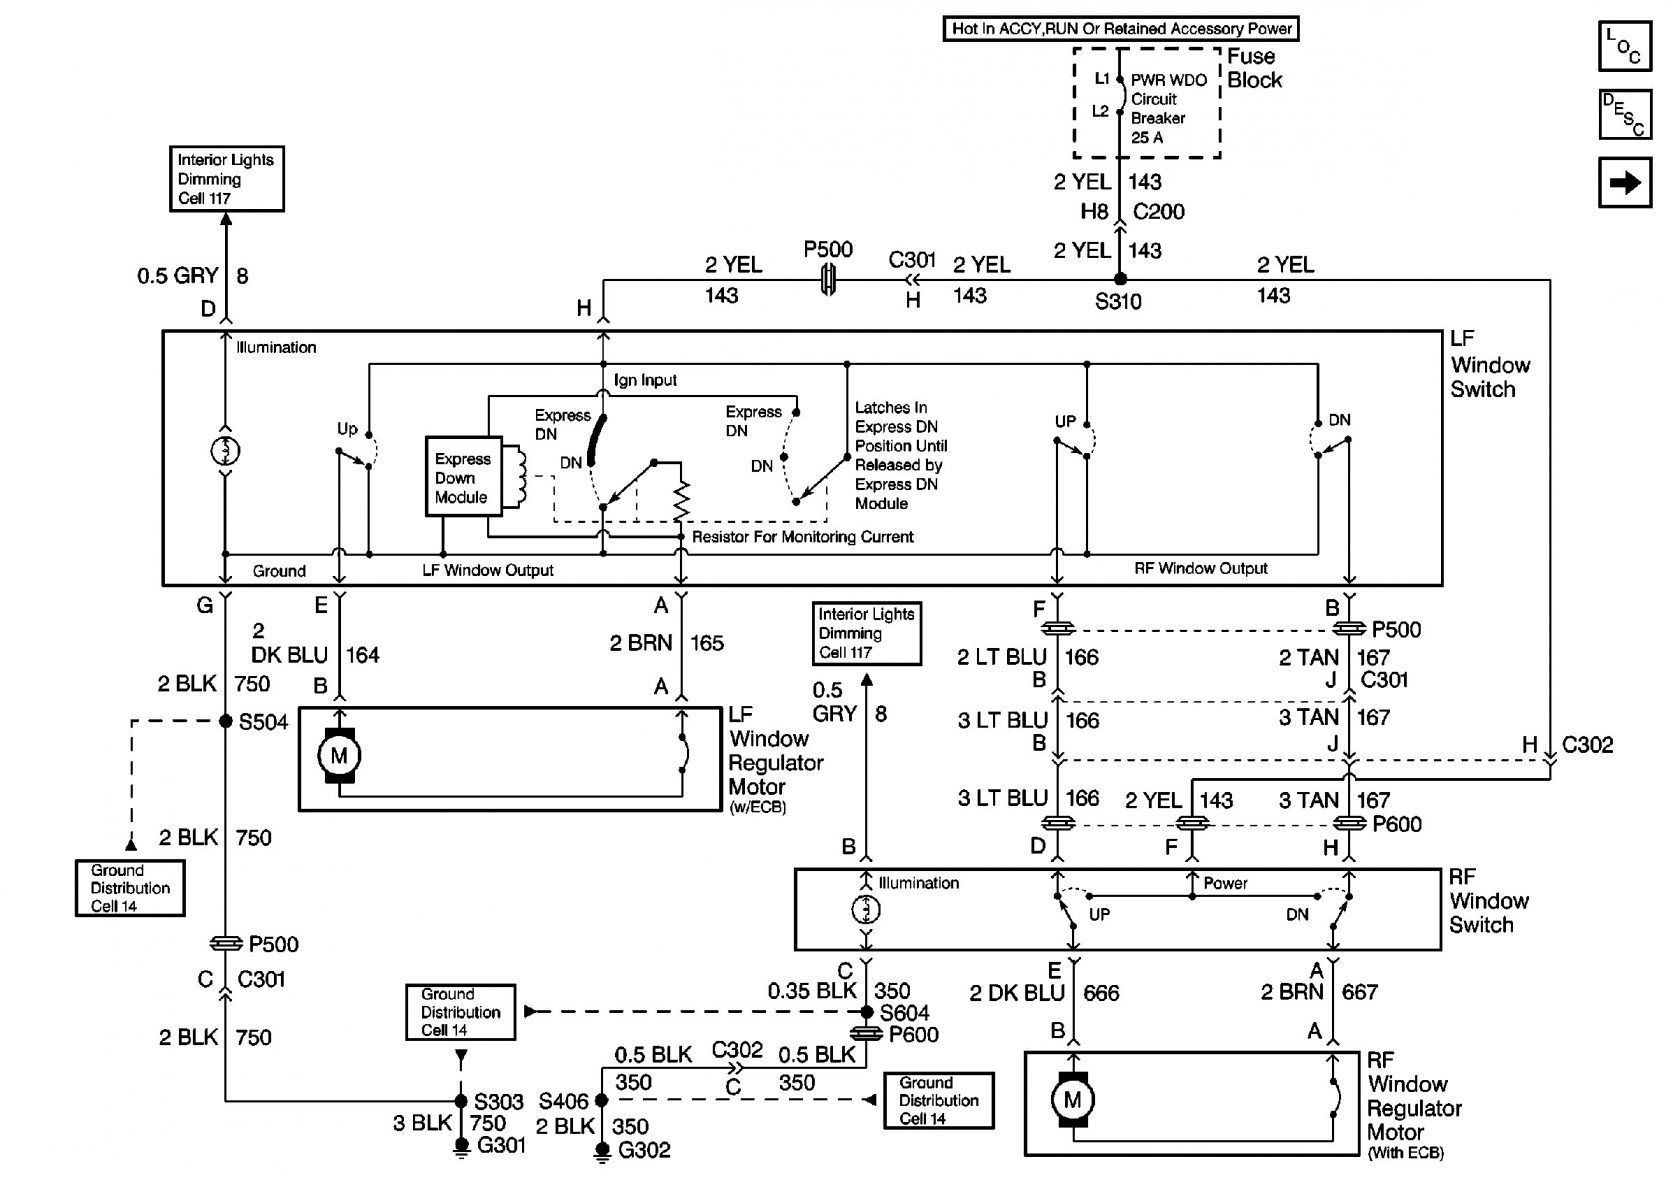 Subaru Fuel Gage Wiring Diagram Schematics Diagrams Ea82 2 5l Engine Oil Flow Best Site Harness 1998 Legacy Ignition